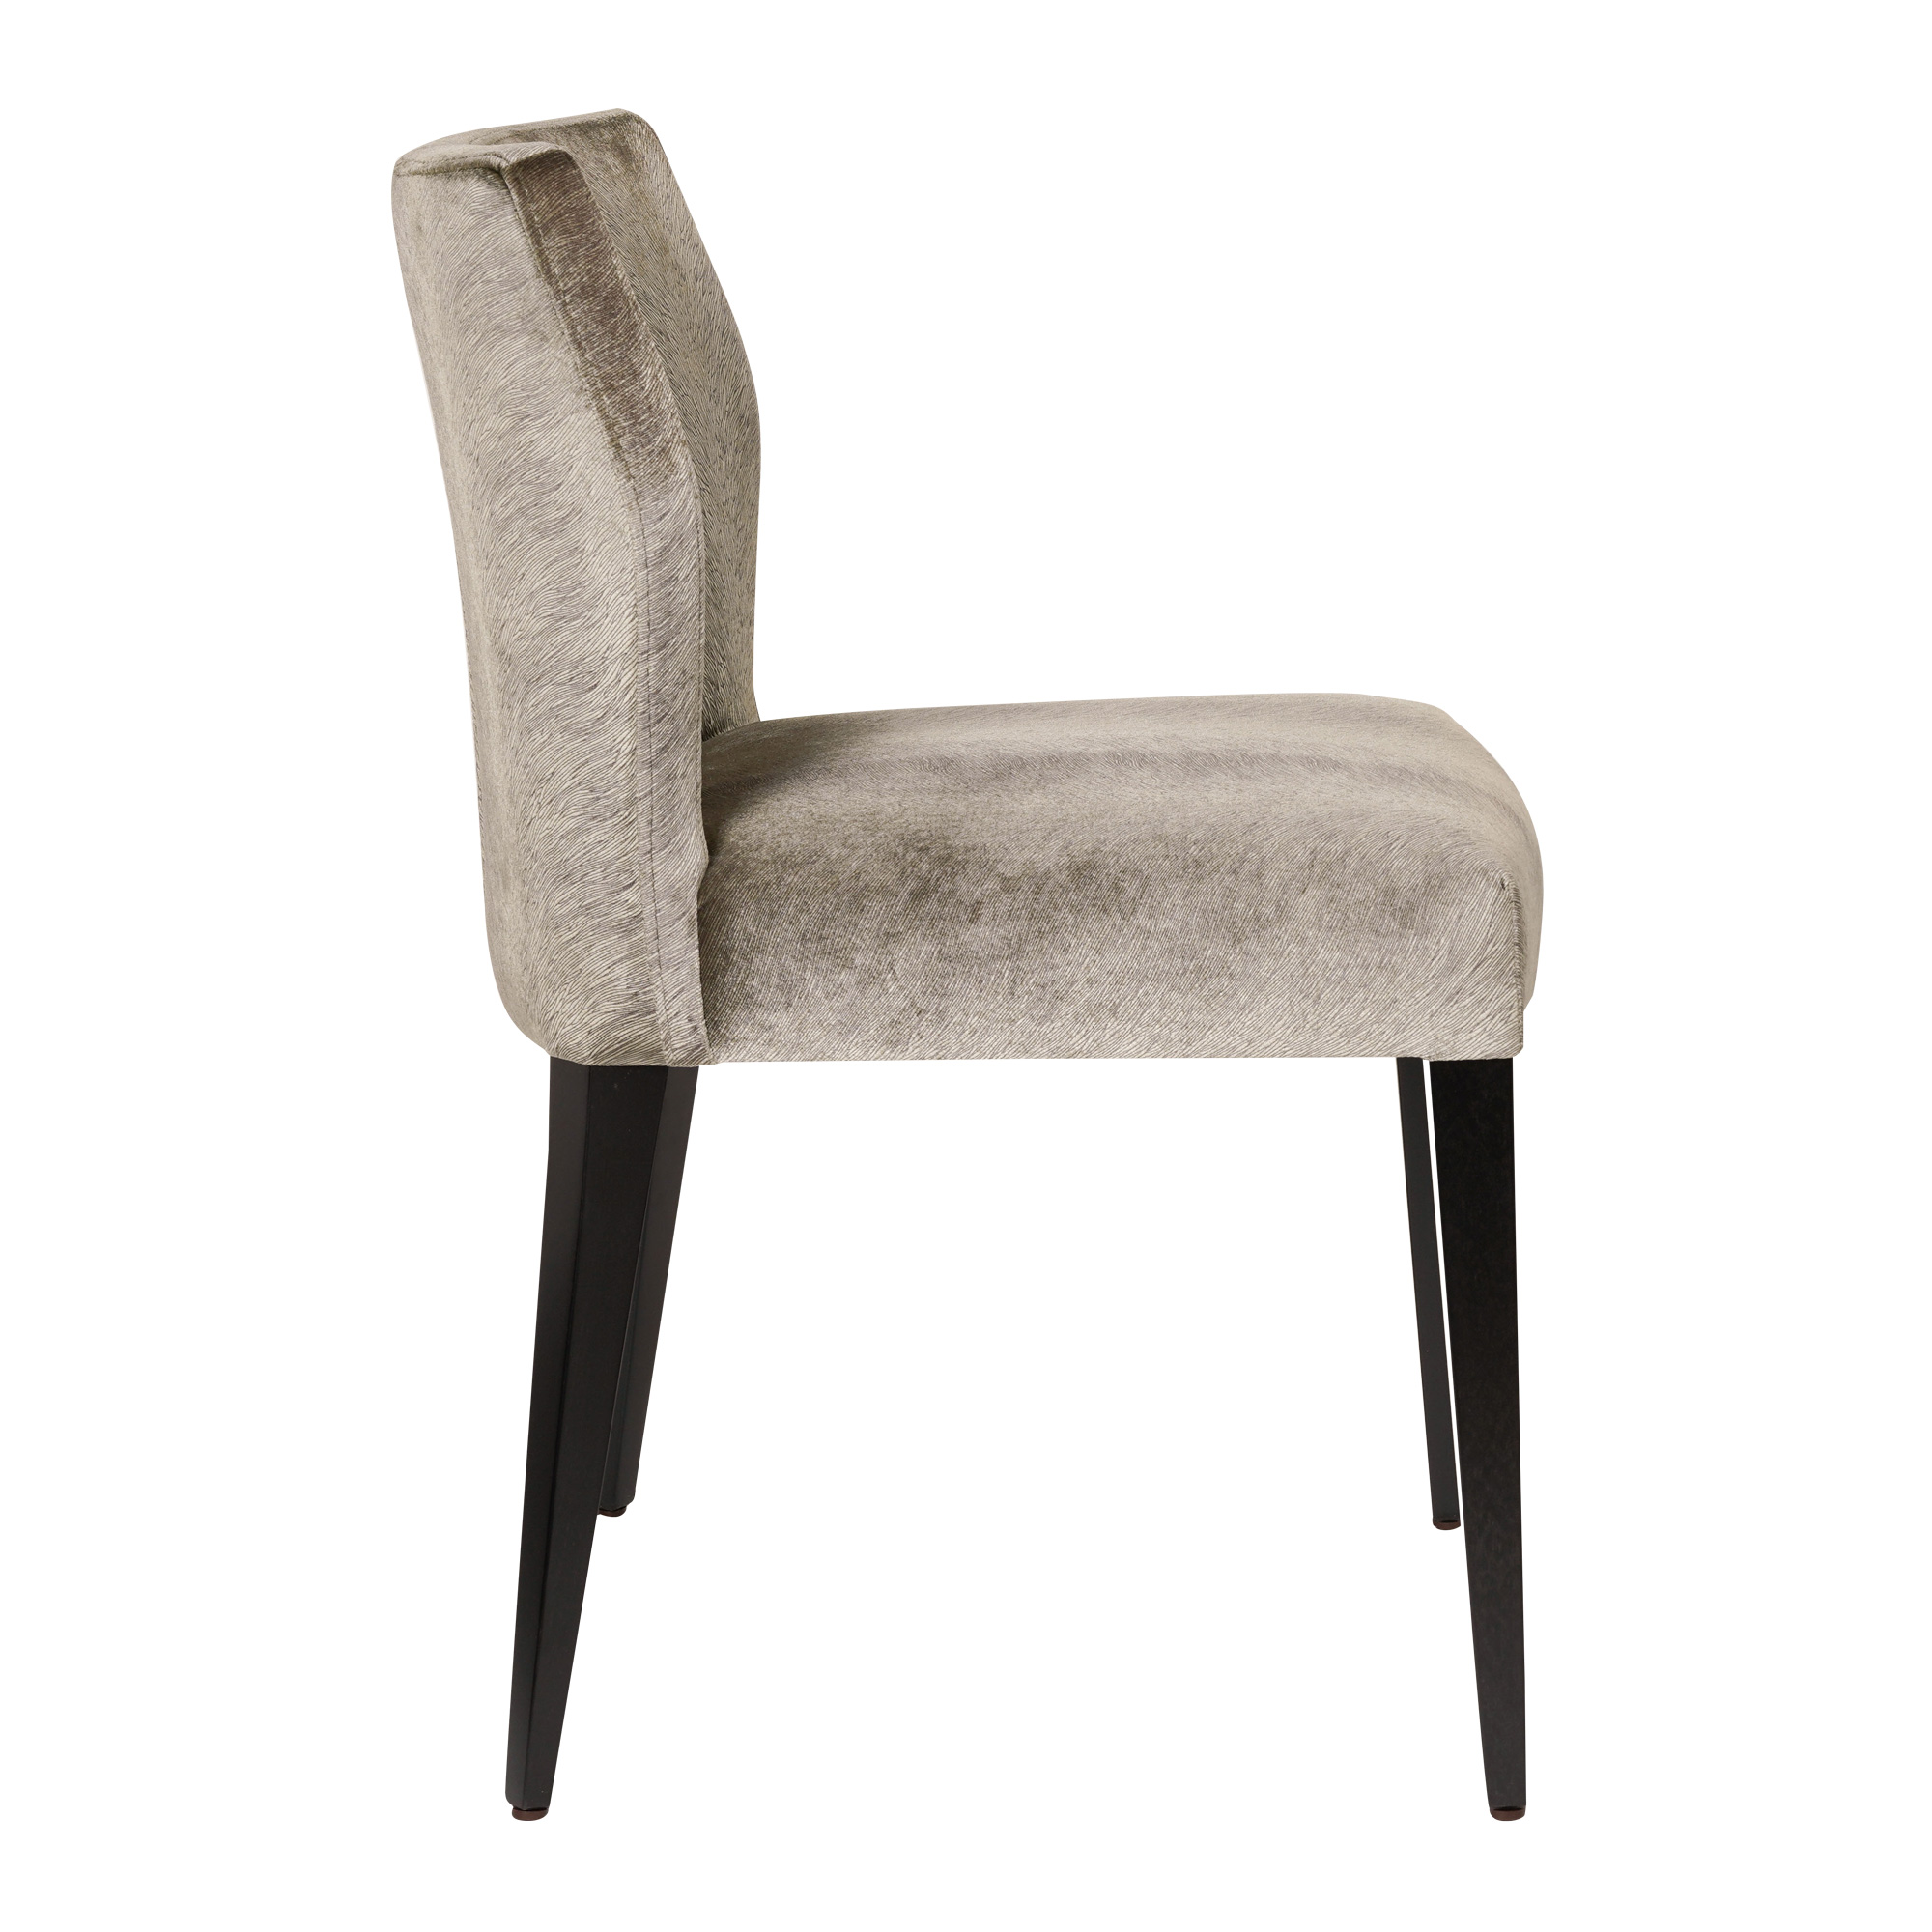 Katy Dining Chair Astele